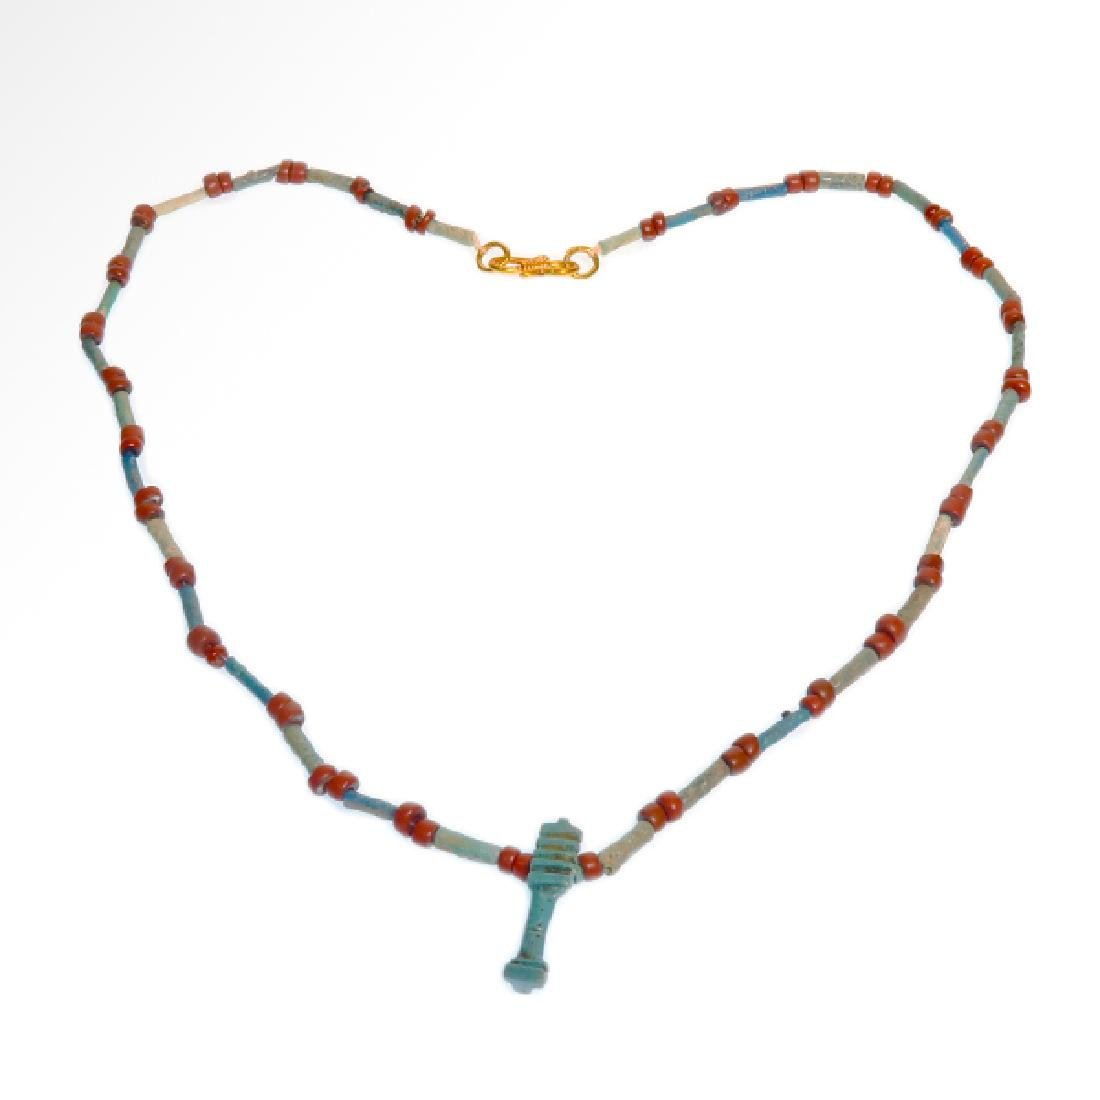 Egyptian Faience Necklace with Djed, 300 B.C.